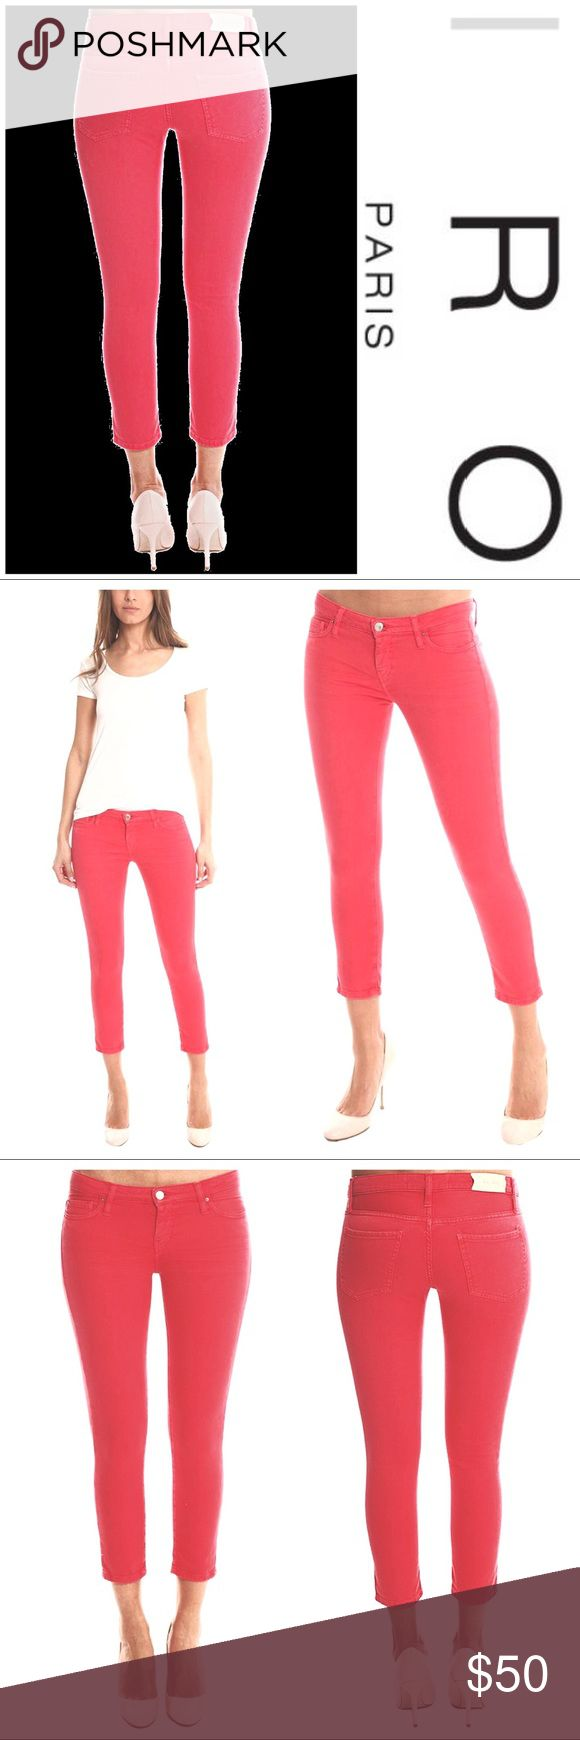 IRO Alyson Ajuste Skinny Crop Jean This cropped skinny comes in a pinkish/red shade that is mute enough for Fall/Winter yet bright enough for Spring/Summer. The intentionally faded look makes it the perfect colored denim staple for every season! Distressed sueded leather designer label, above back right pocket, embossed with 'IRO'. 98% Cotton 2% Elastane. Model is 5'9' wearing size 36. IRO Jeans Skinny